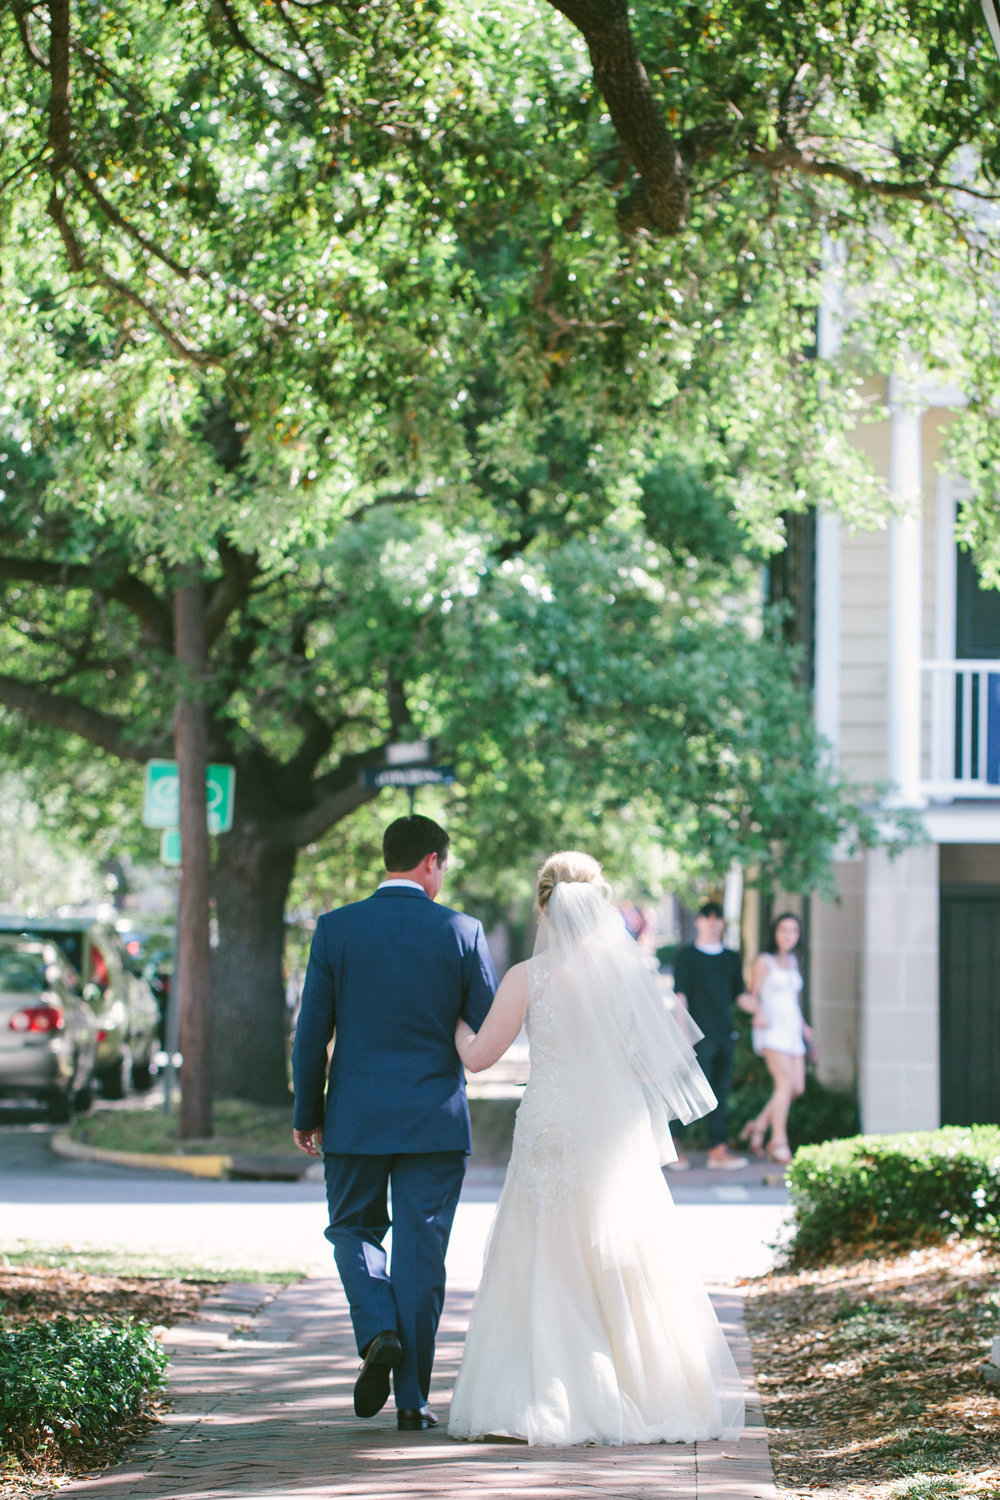 allison-blake-ivory-and-beau-bridal-boutique-savannah-wedding-planner-savannah-florist-jenna-davis-photography-cha-bella-wedding-warren-square-wedding-savannah-square-wedding-savannah-bridal-savannah-weddings-gettin-ready-39.jpg